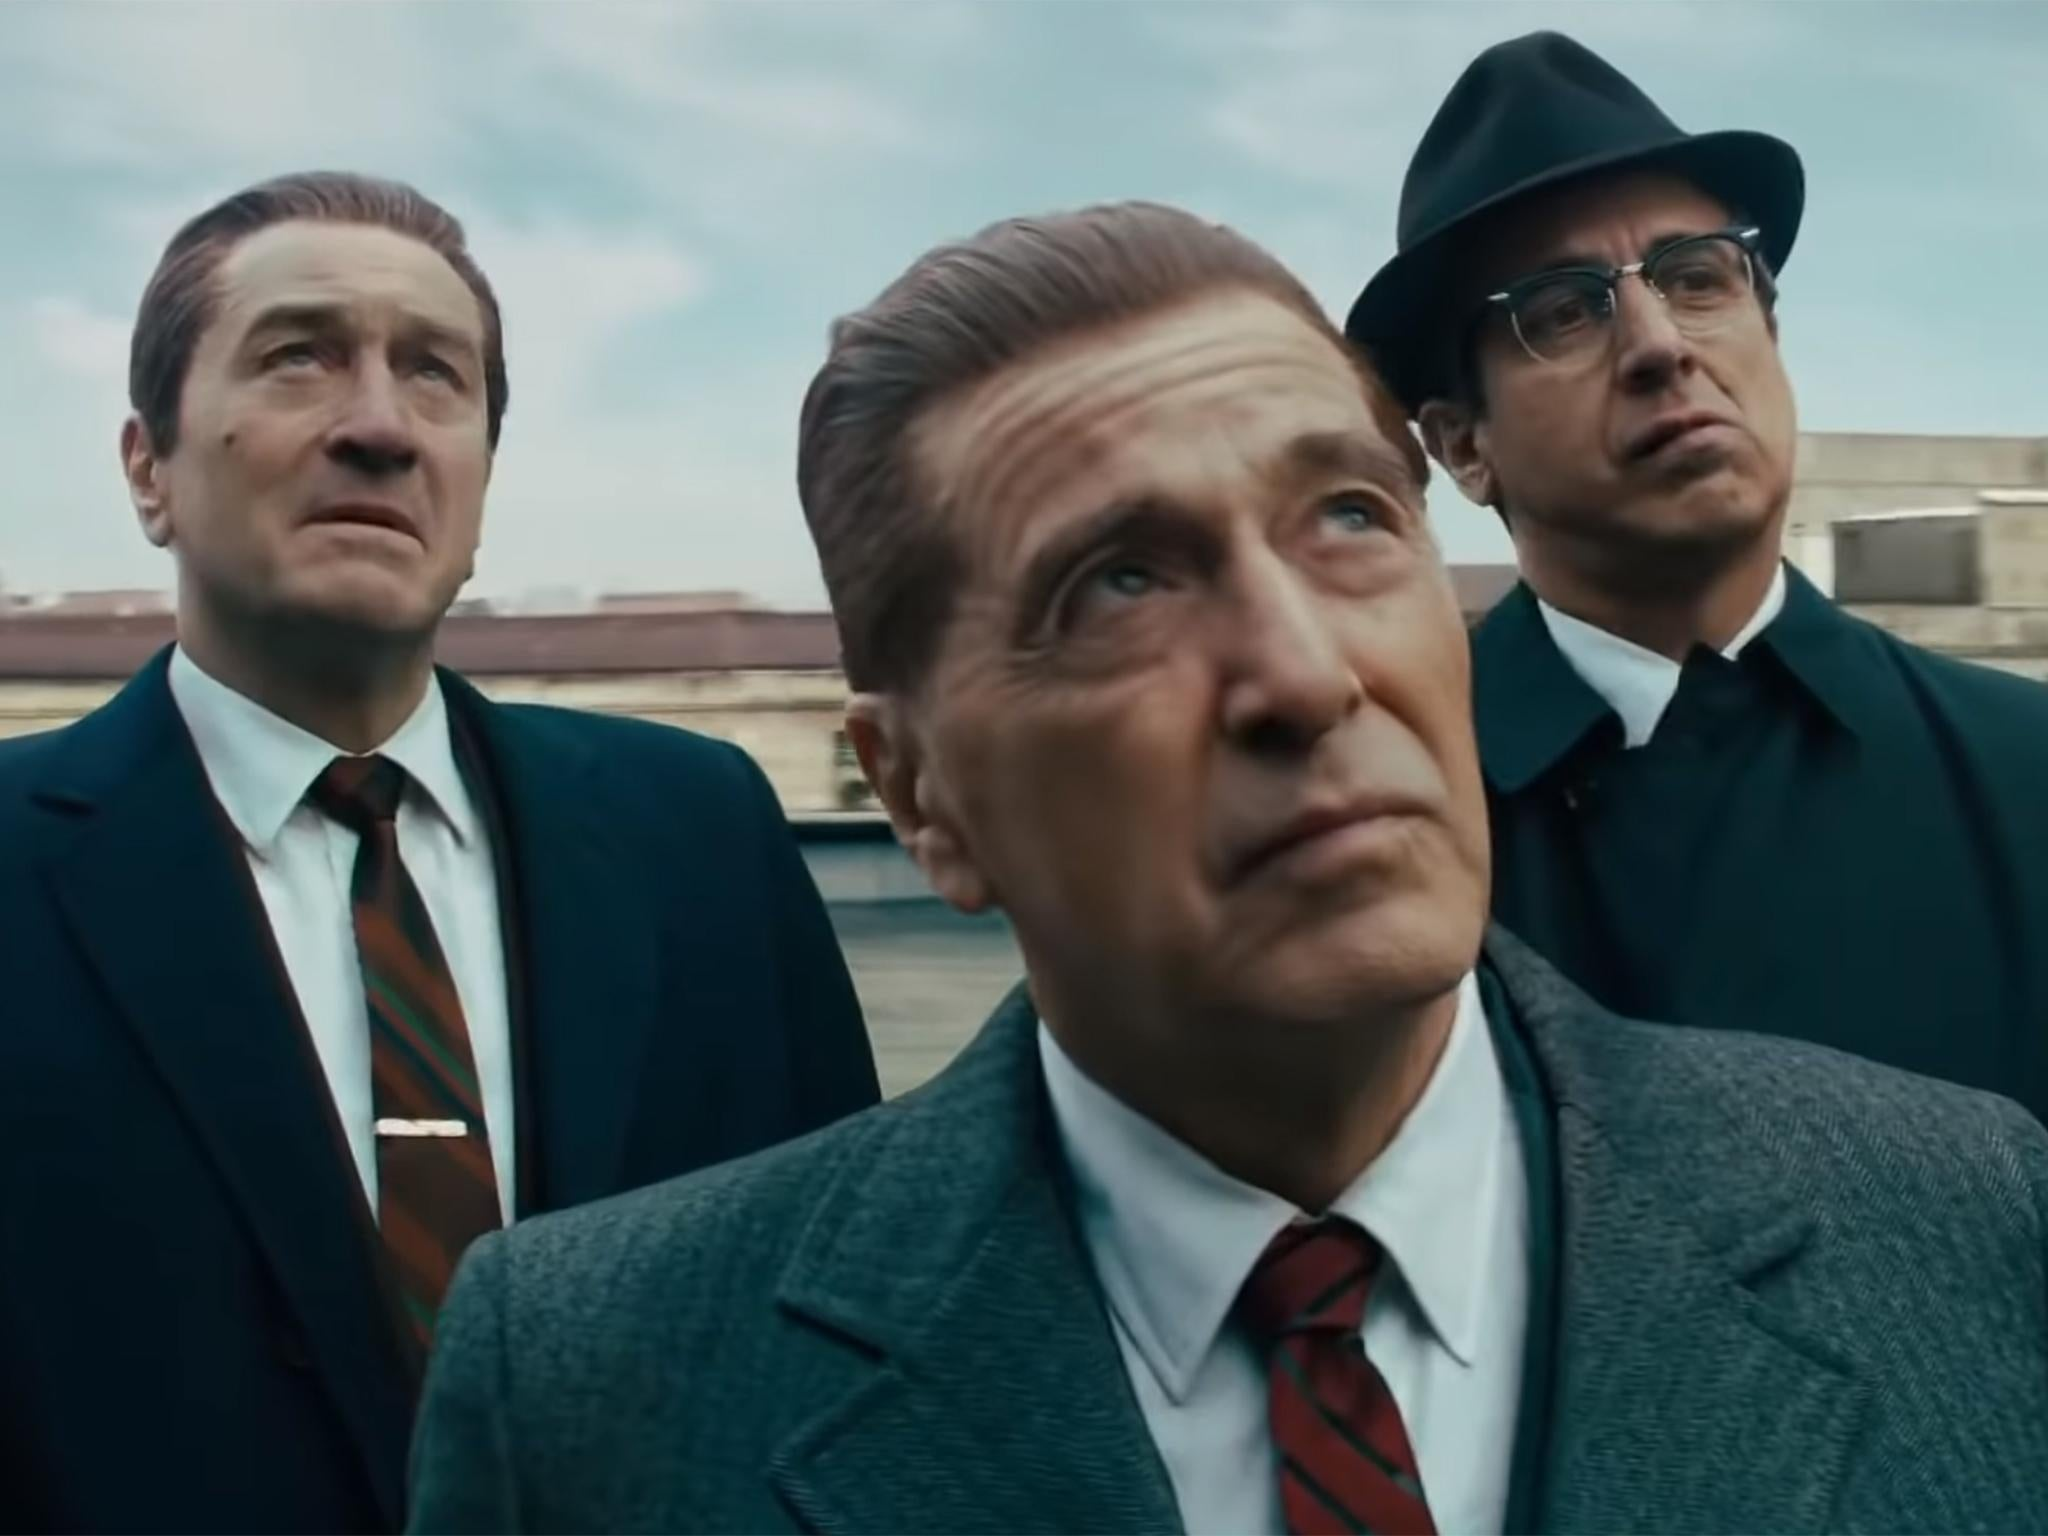 The Irishman: Who's who, which events are real and is the claim about Jimmy Hoffa's disappearance true?